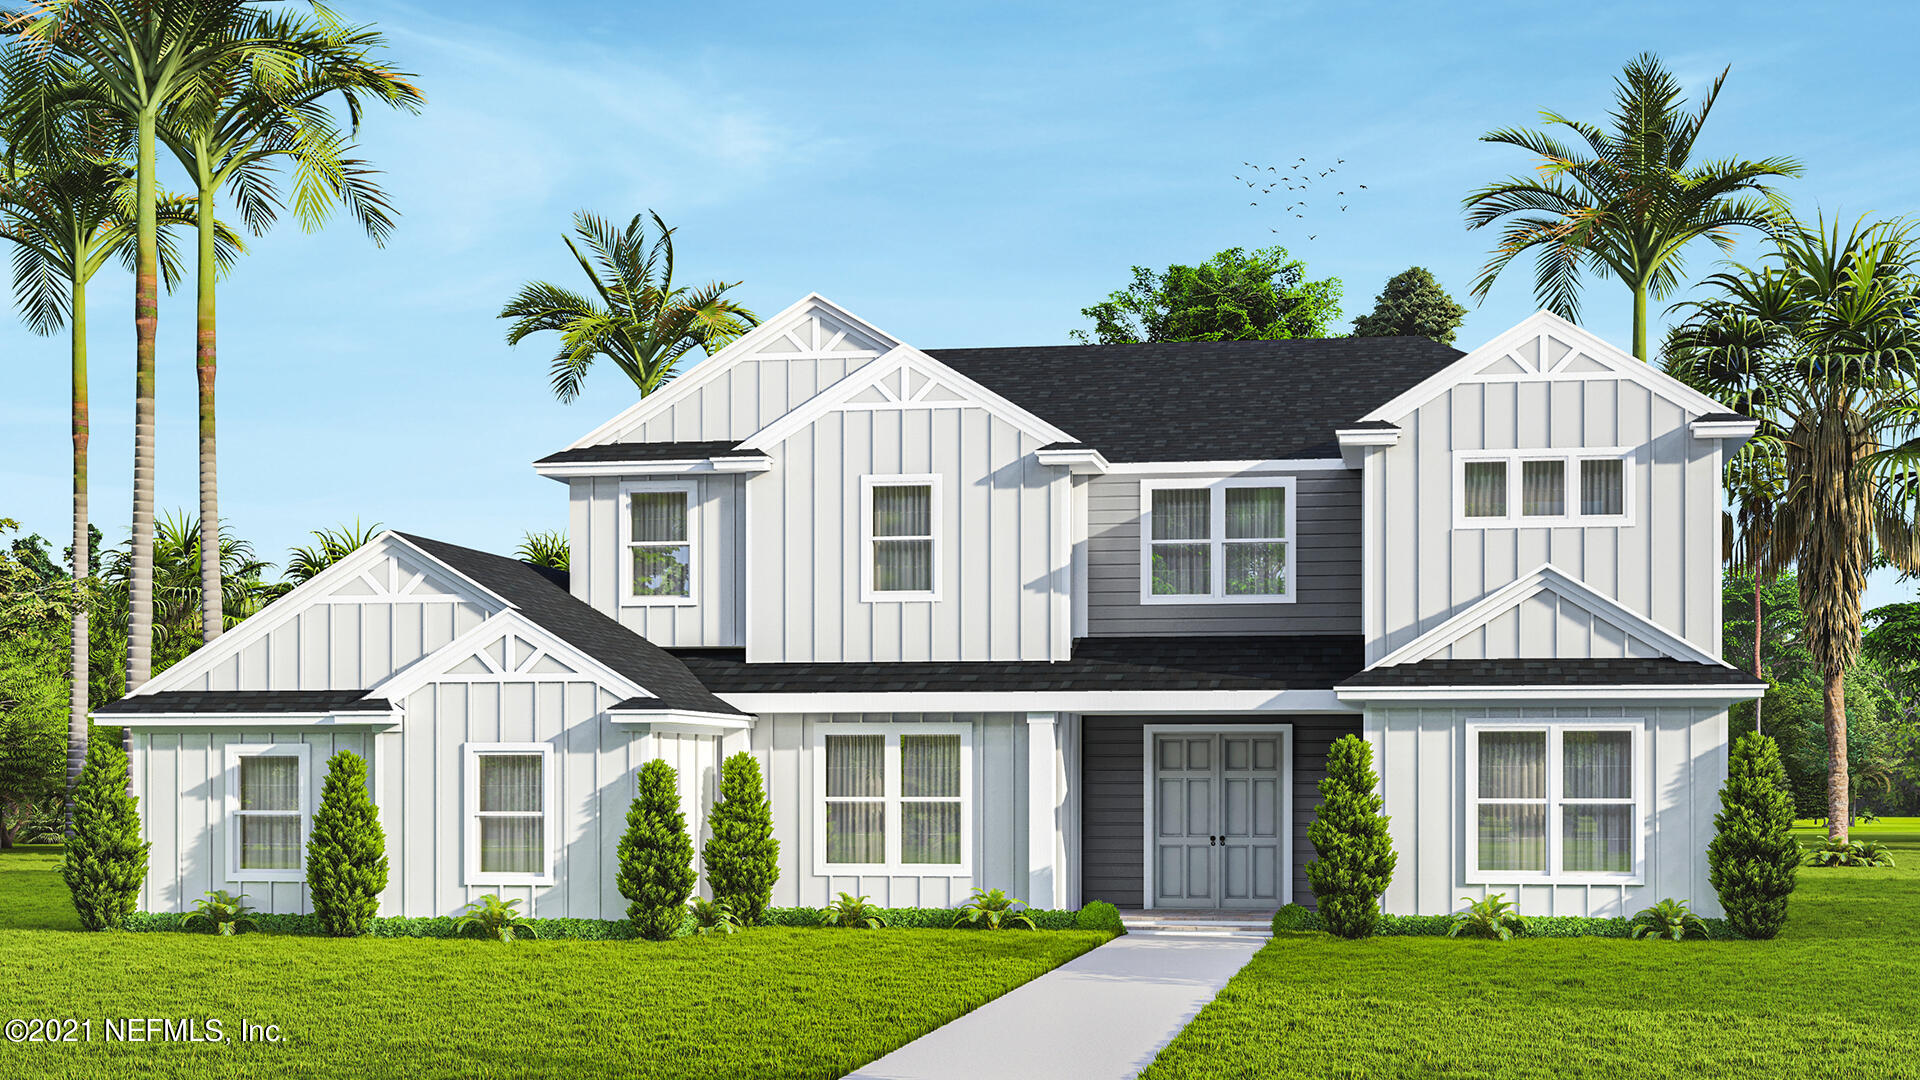 To be built!!! Choose from one of Pinnacle Homes beautiful floor plans to design your next home, or they can customize one for you on the 2.43 acres with over 100' of frontage on the St Johns River and views of the city. All homes include high ceilings & 8' doors, oversized windows, custom 42'' cabinets with soft-close drawers and crown molding, quartz countertops, wood flooring, stainless appliances, deluxe master bathroom, walk-in closet, 4'' door casing, and comes with a full builder warranty. Photos are of model to showcase included features and available finishes. All floor plans available to view on builder website.